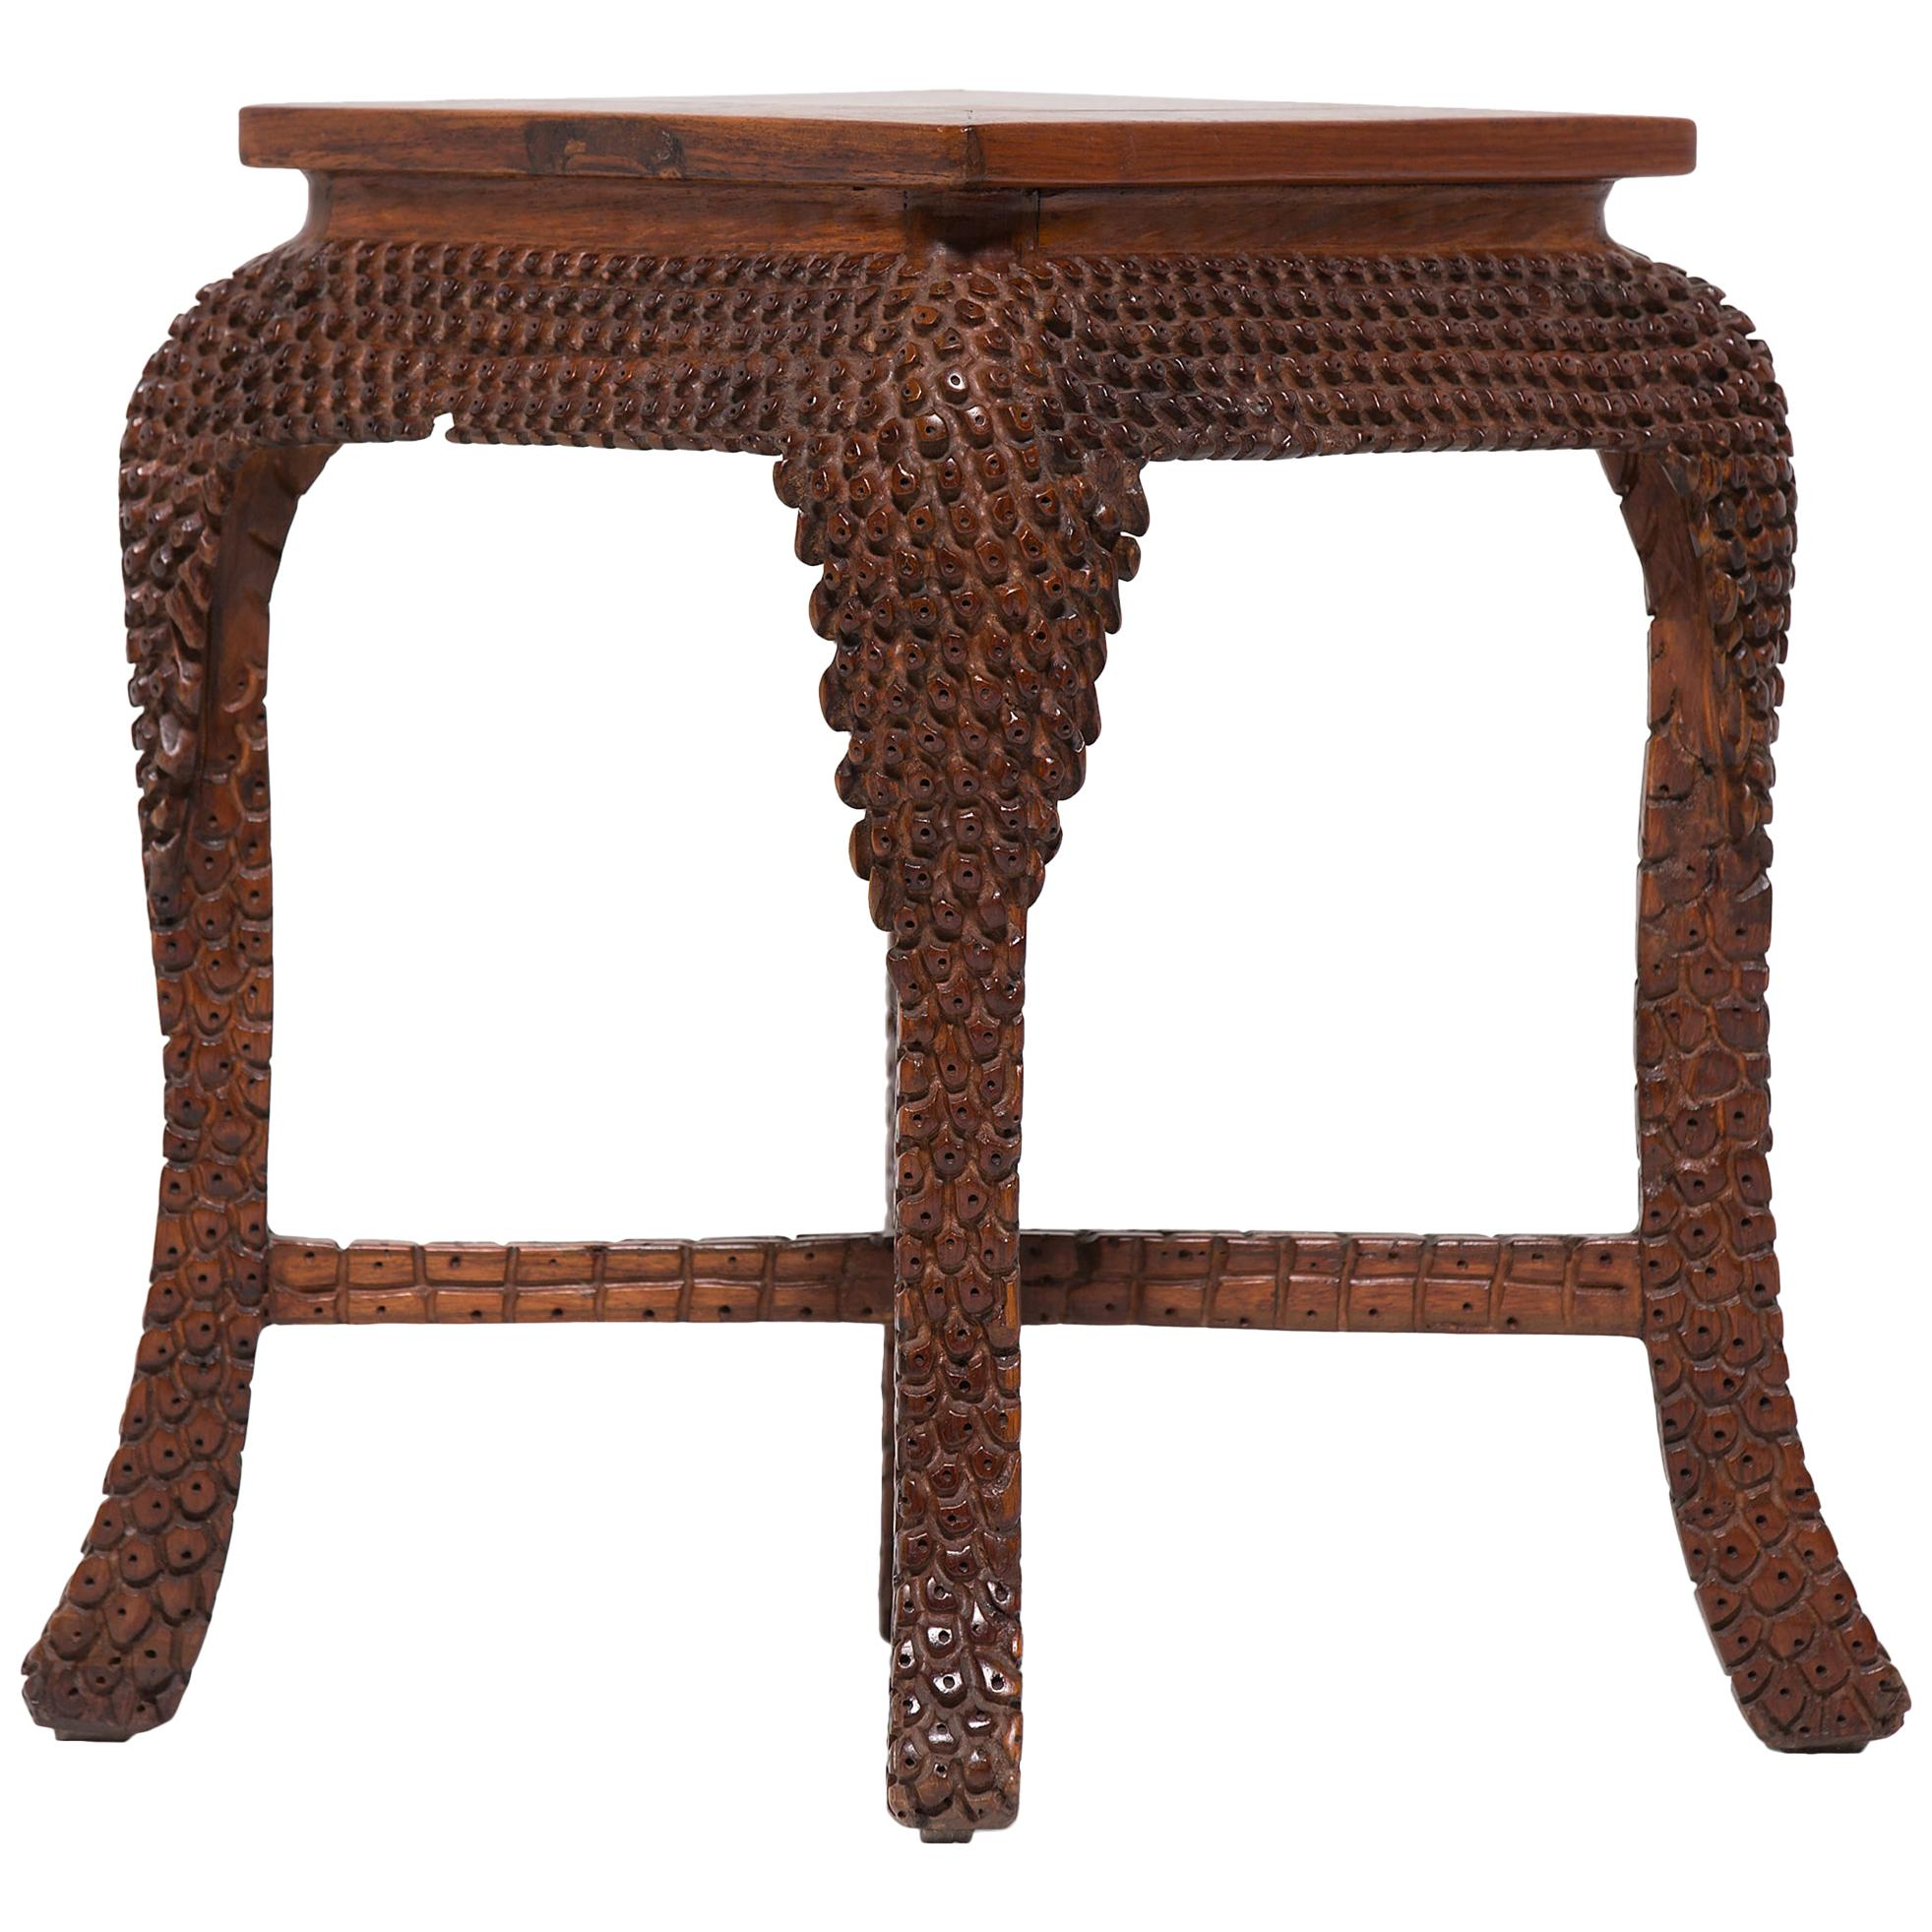 Antiques Furniture Symbol Of The Brand Regency Walnut Pedestal Table Do You Want To Buy Some Chinese Native Produce?